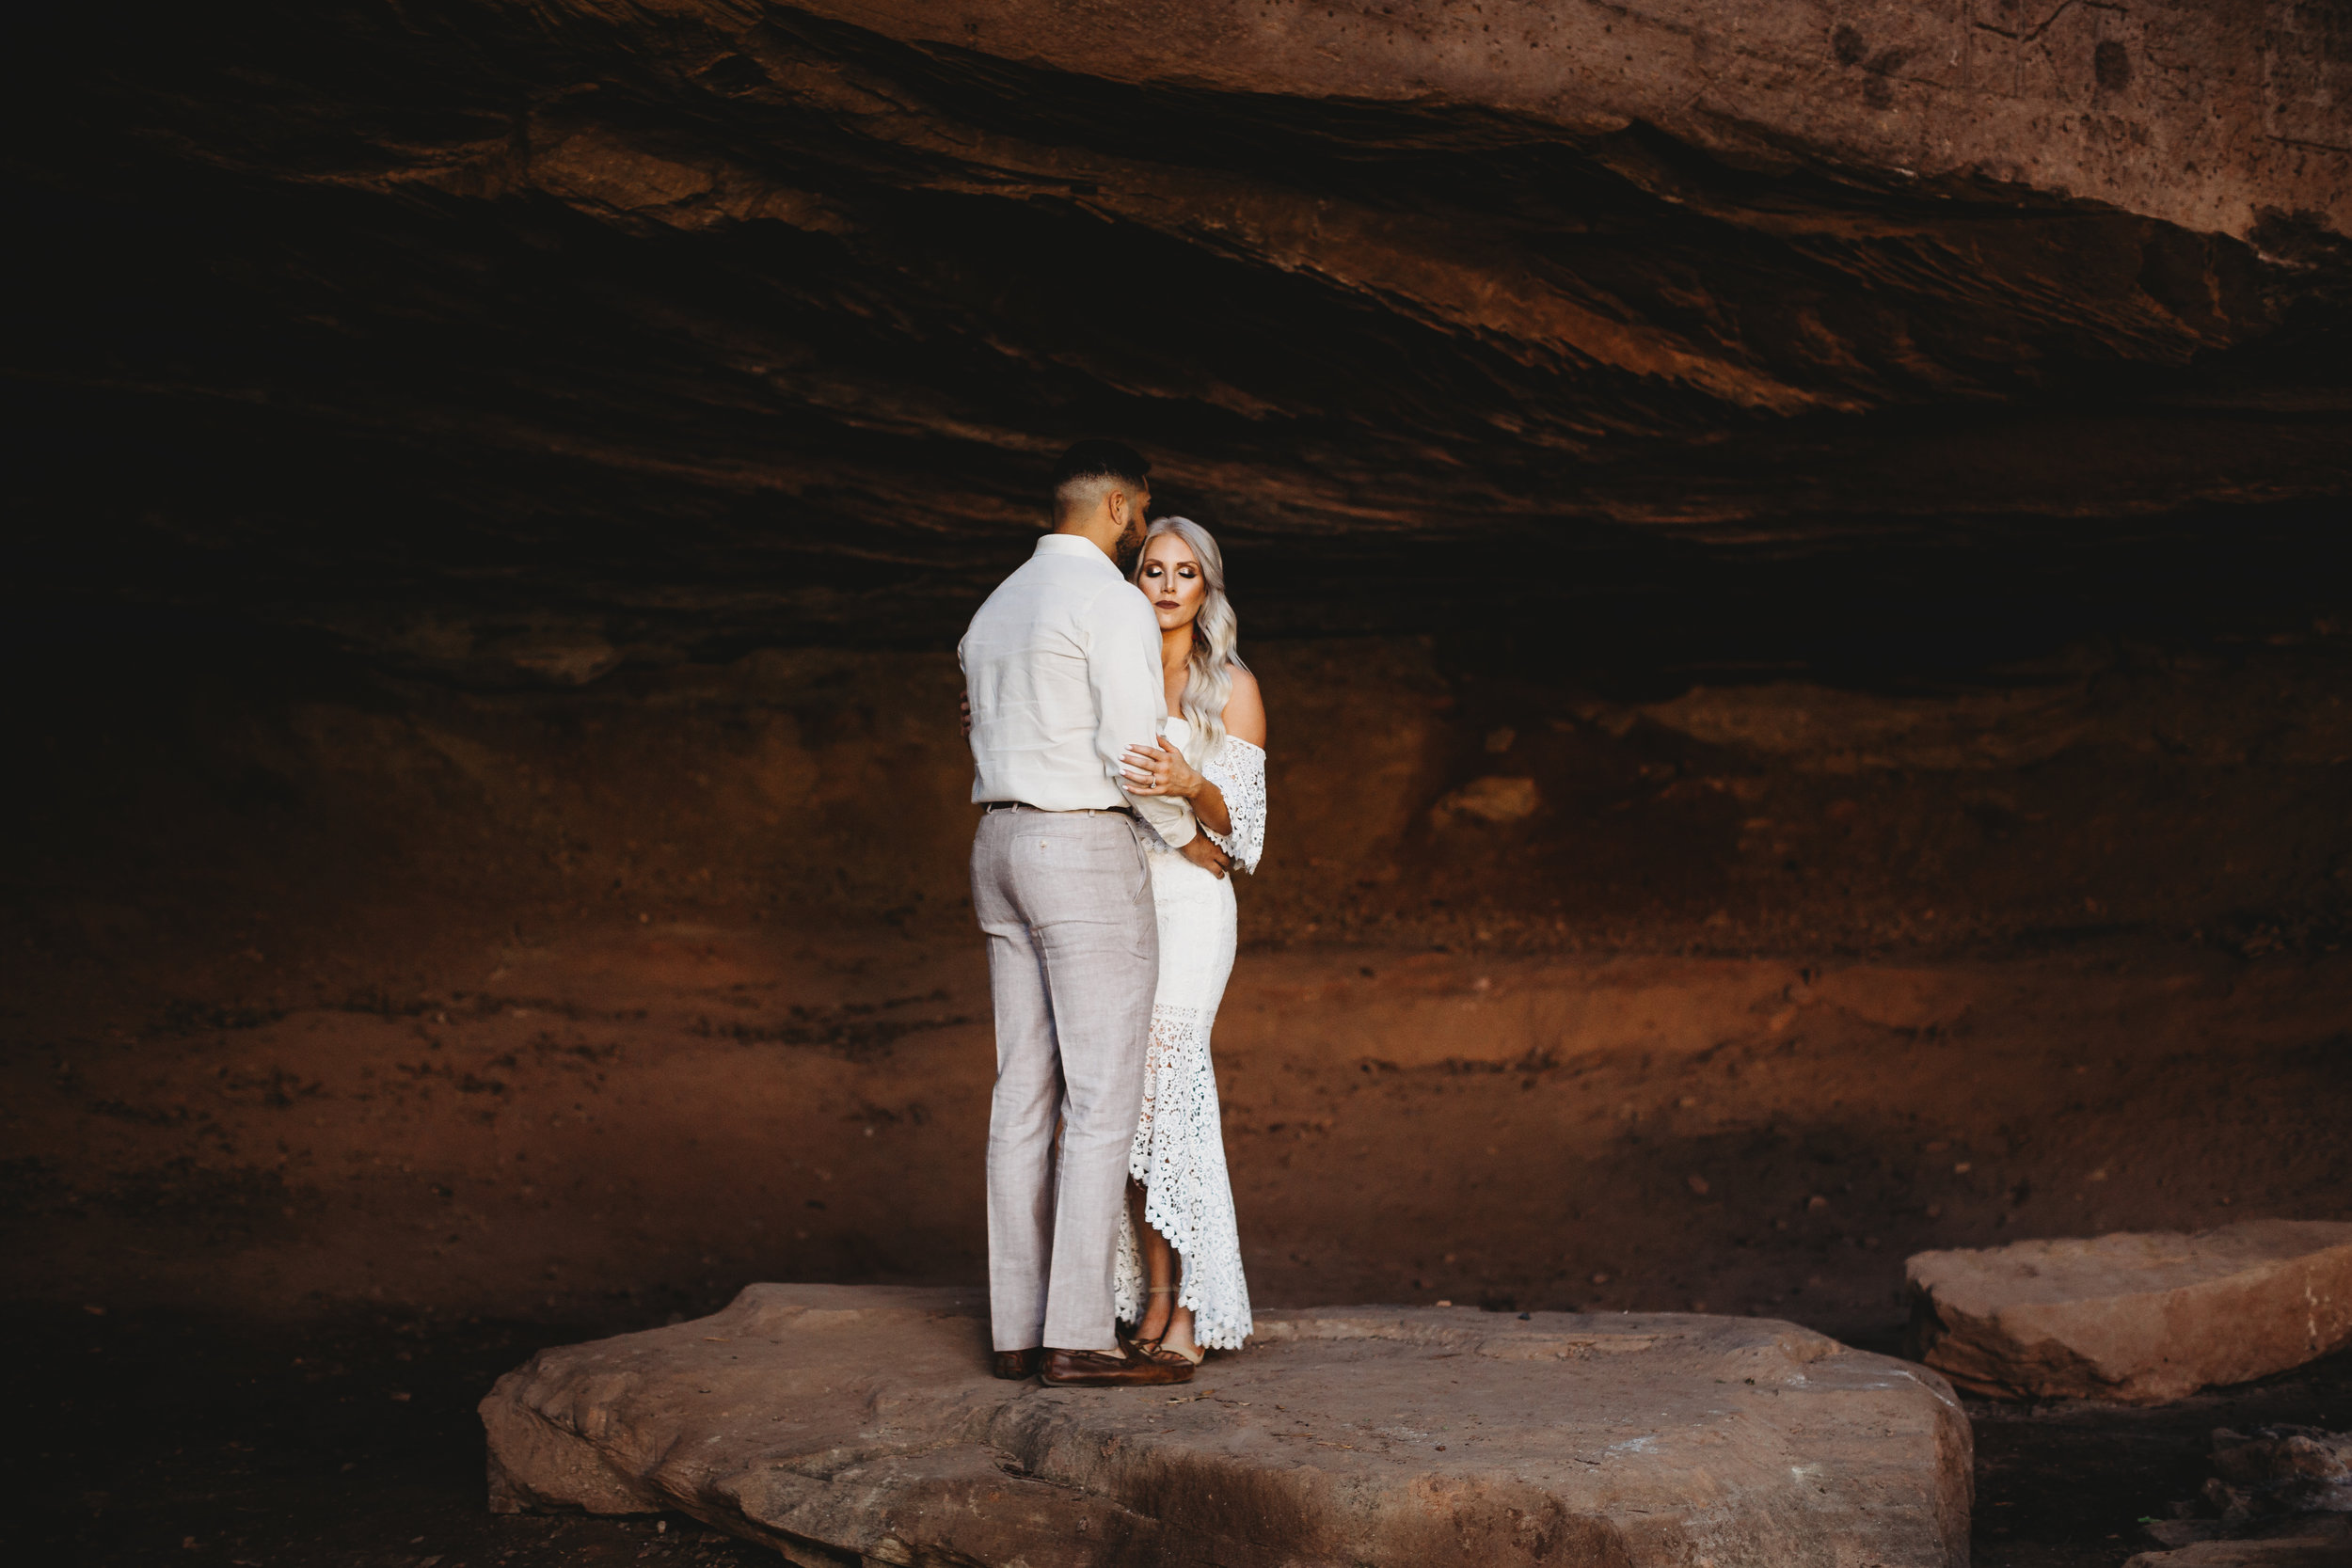 Standing together under red sandstone in white neutral colors #engagementphotos #riverfalls #engaged #personality #amarillotexas #engagementphotographer #lifestylephotos #amarillophotographer #locationchoice #texasengagementphotos #engagment #tealawardphotography #wildliferefuge